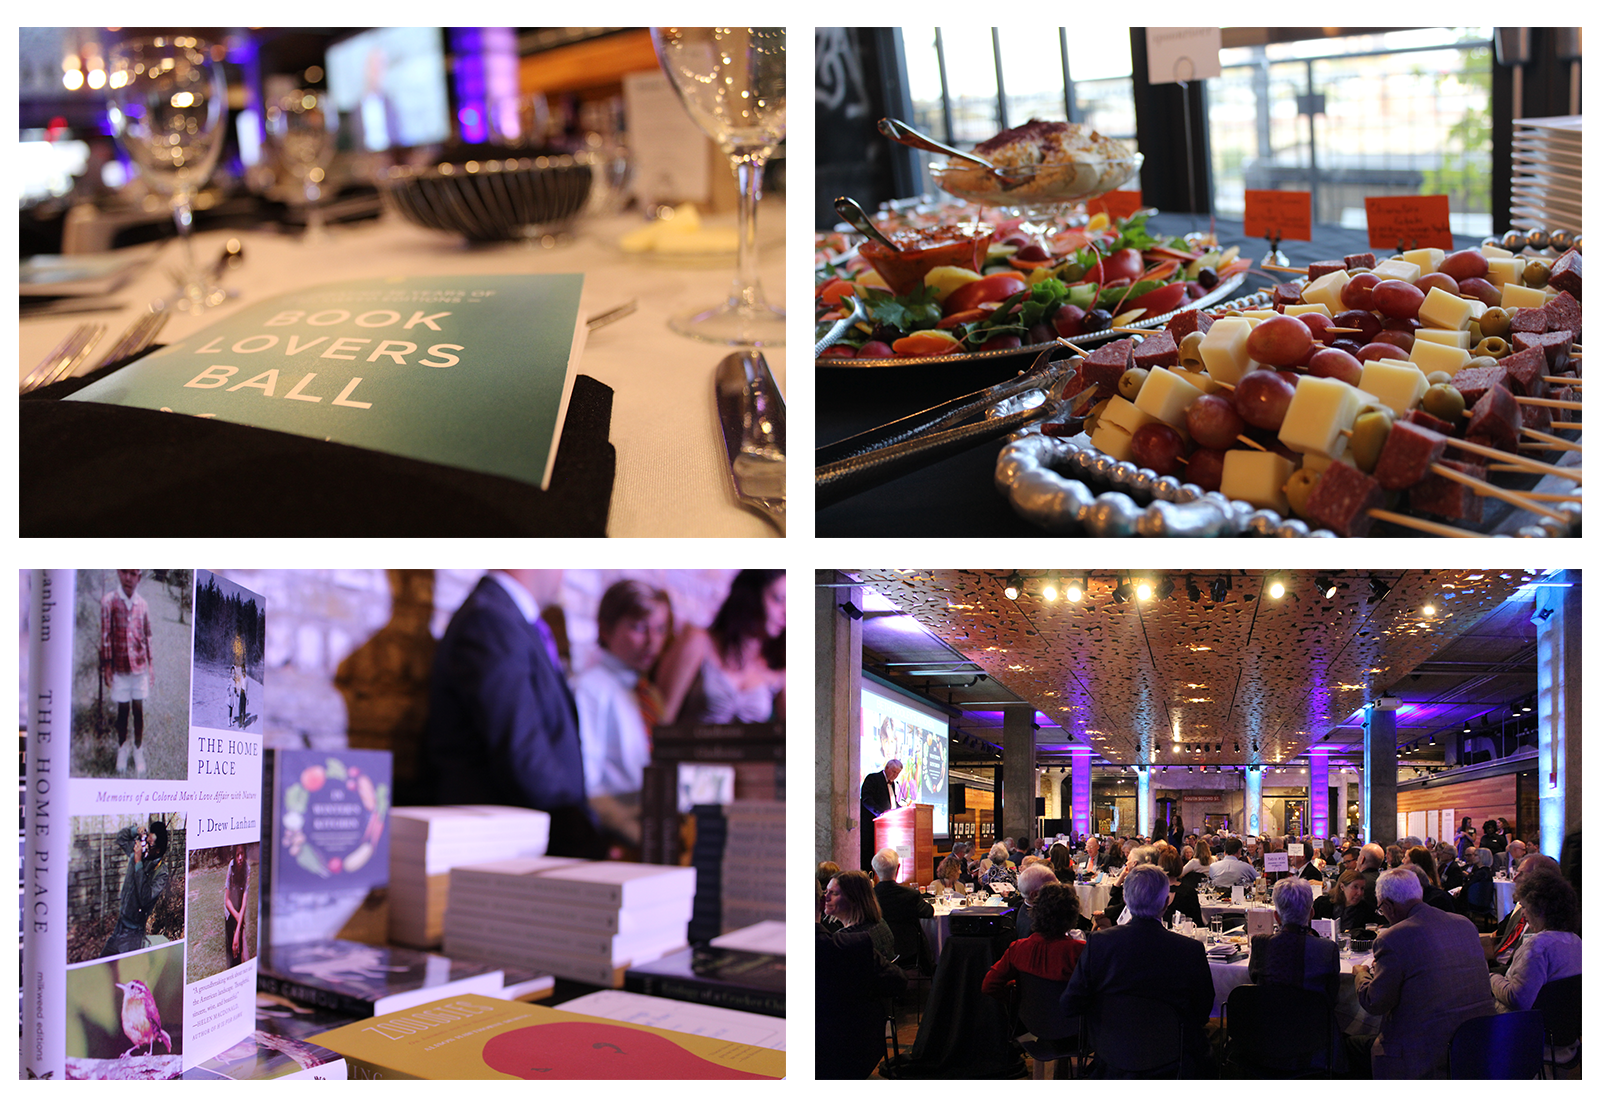 Photos of the Book Lovers Ball